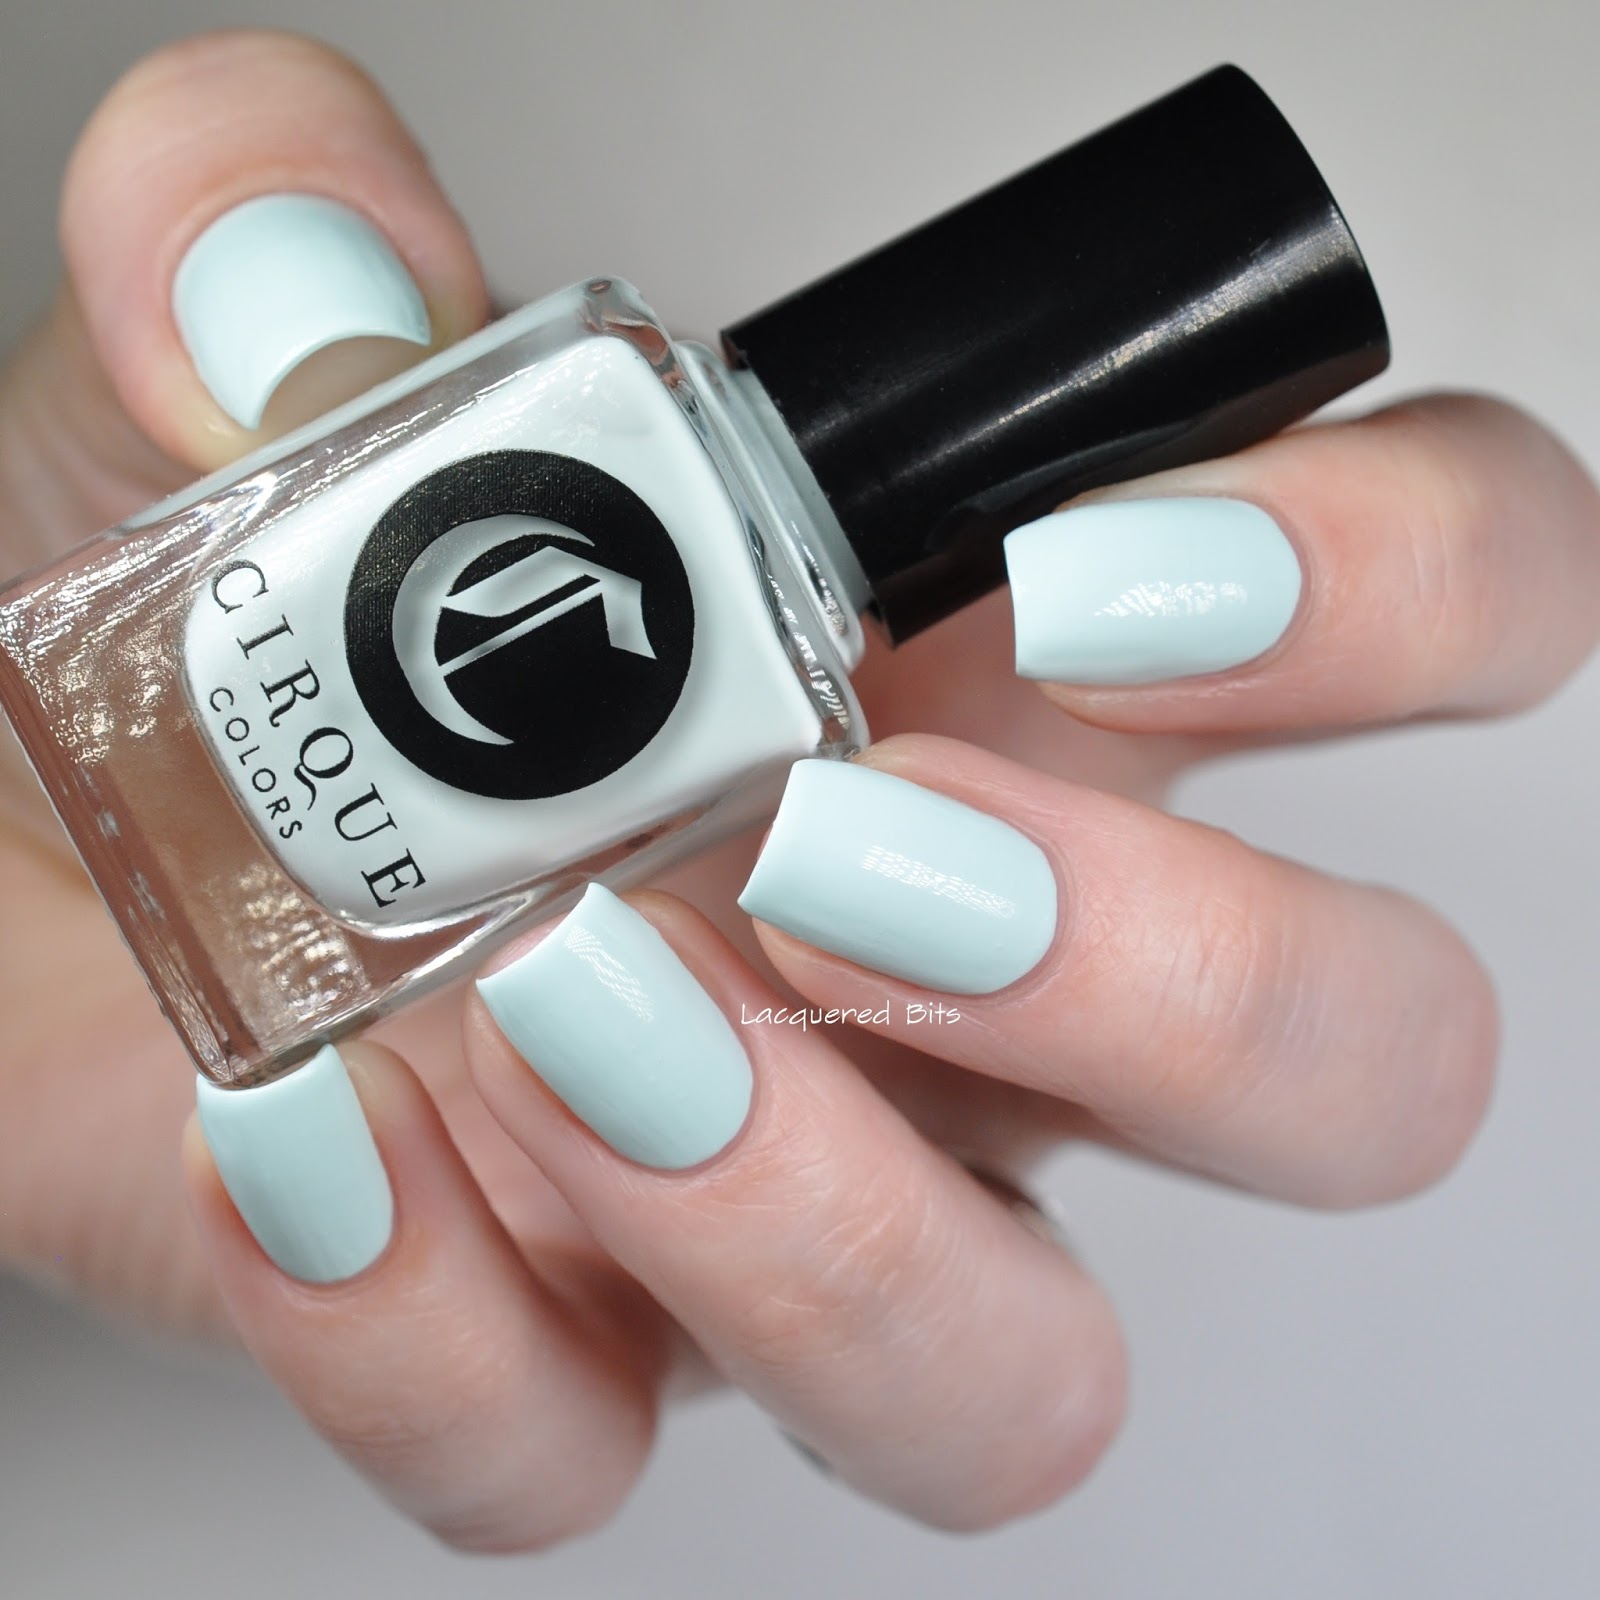 Meet Me in Montauk - Cirque Colors Spring/Summer 2016